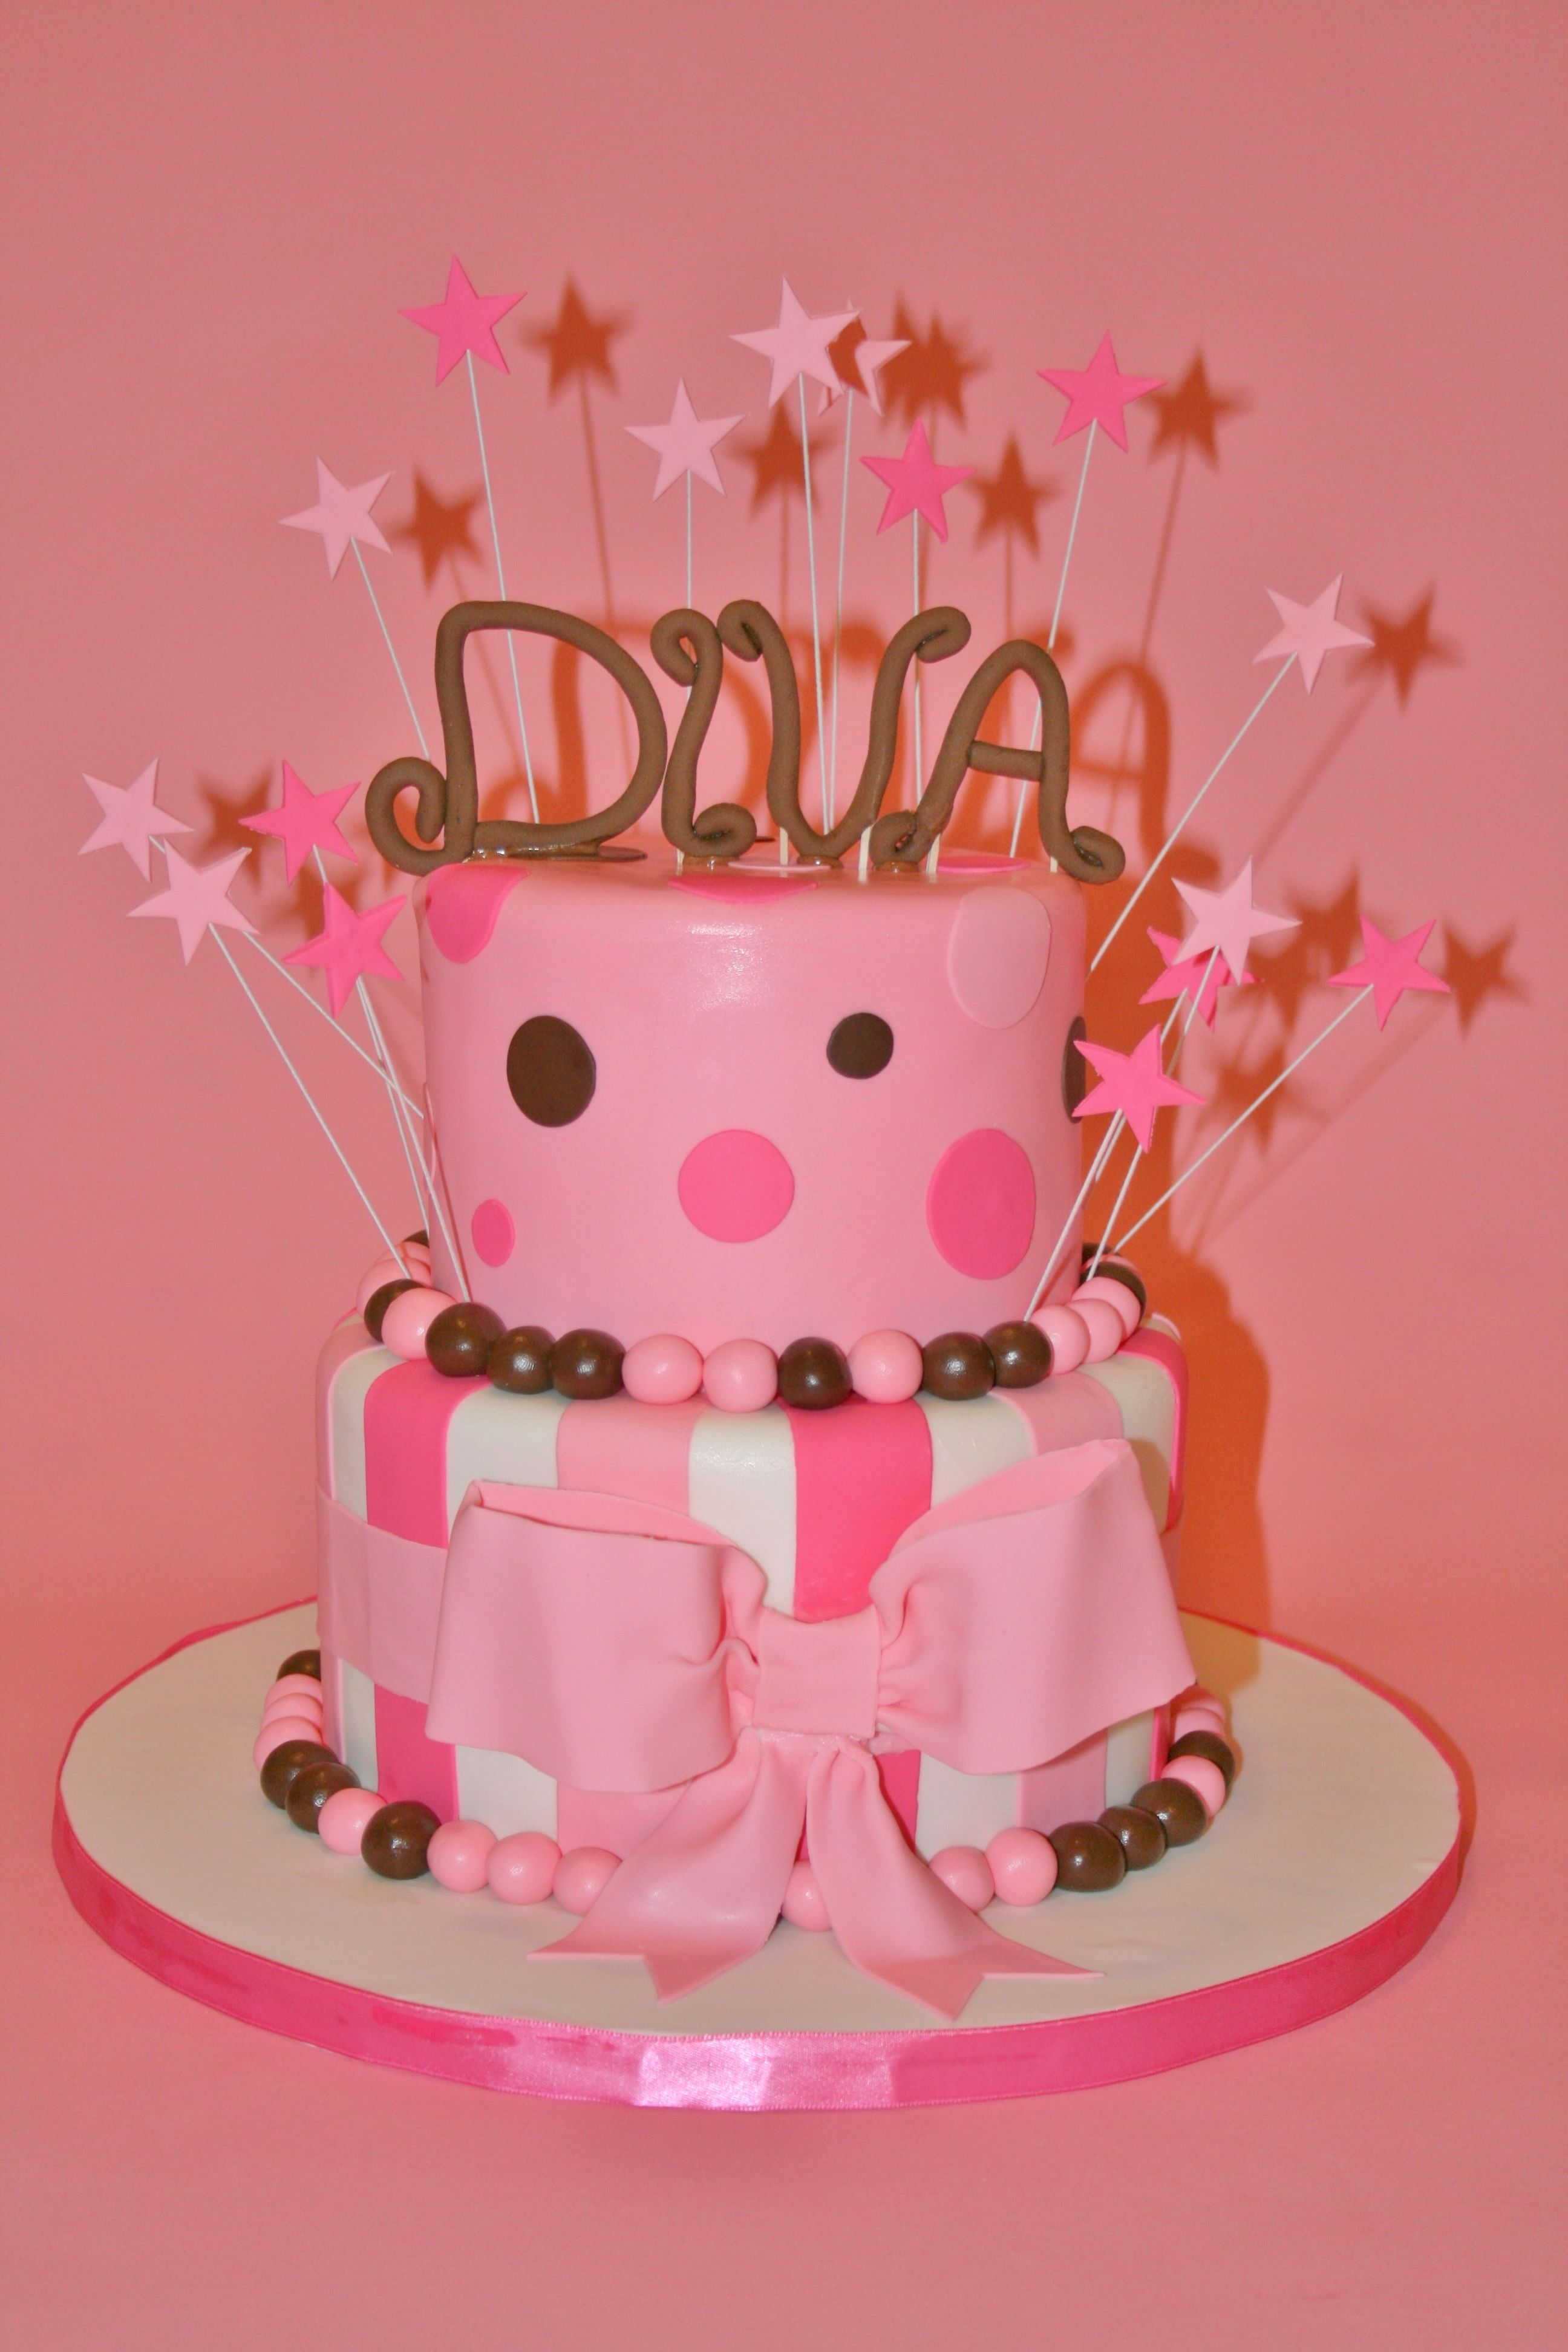 Diva Birthday Cake Would Change It A Bit Have Your Cake And Eat It